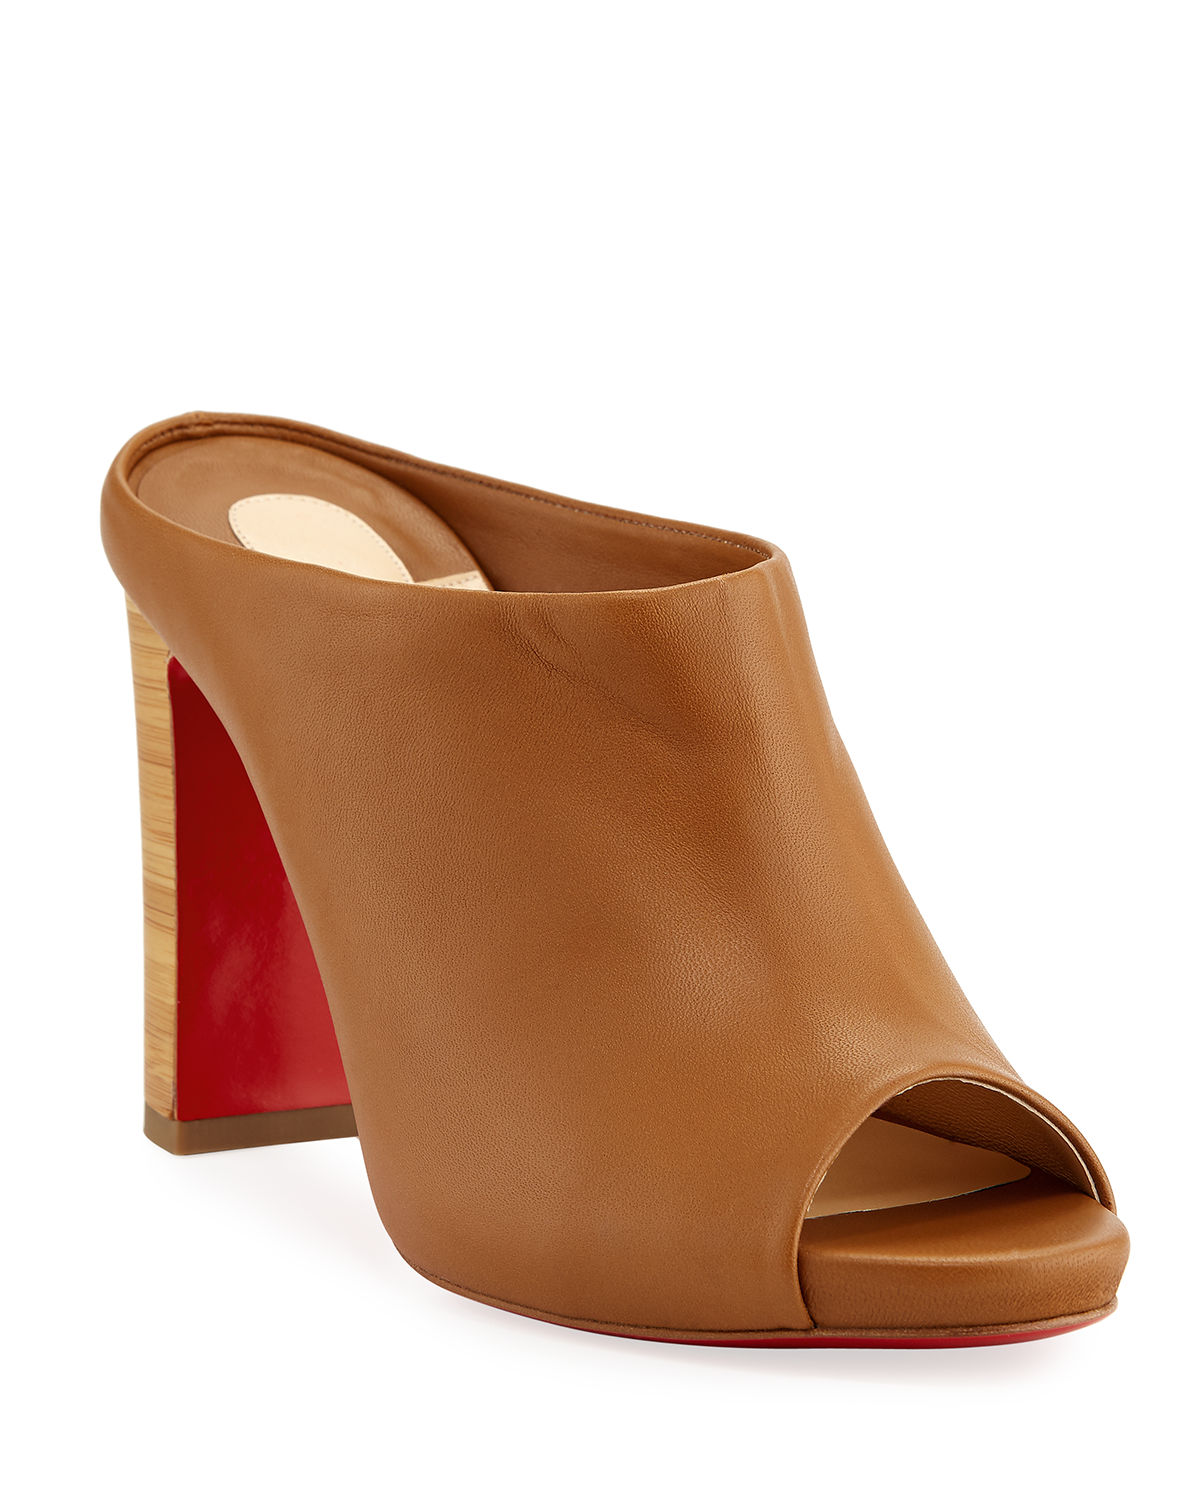 Corinthe Peep-Toe Leather Red Sole Mules